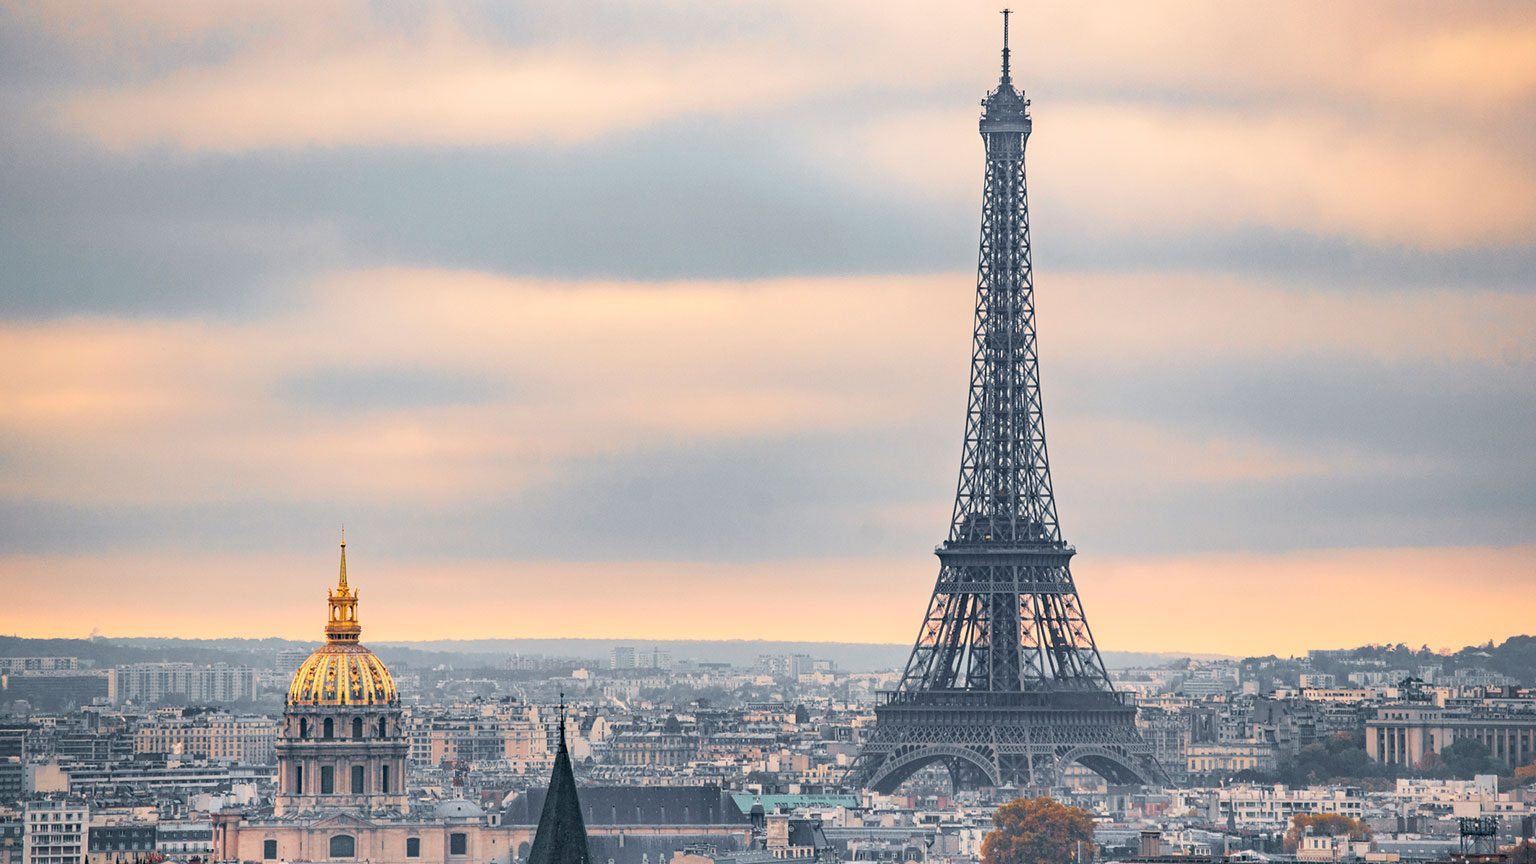 View of the Eiffel Tower and Paris city skyline at dusk